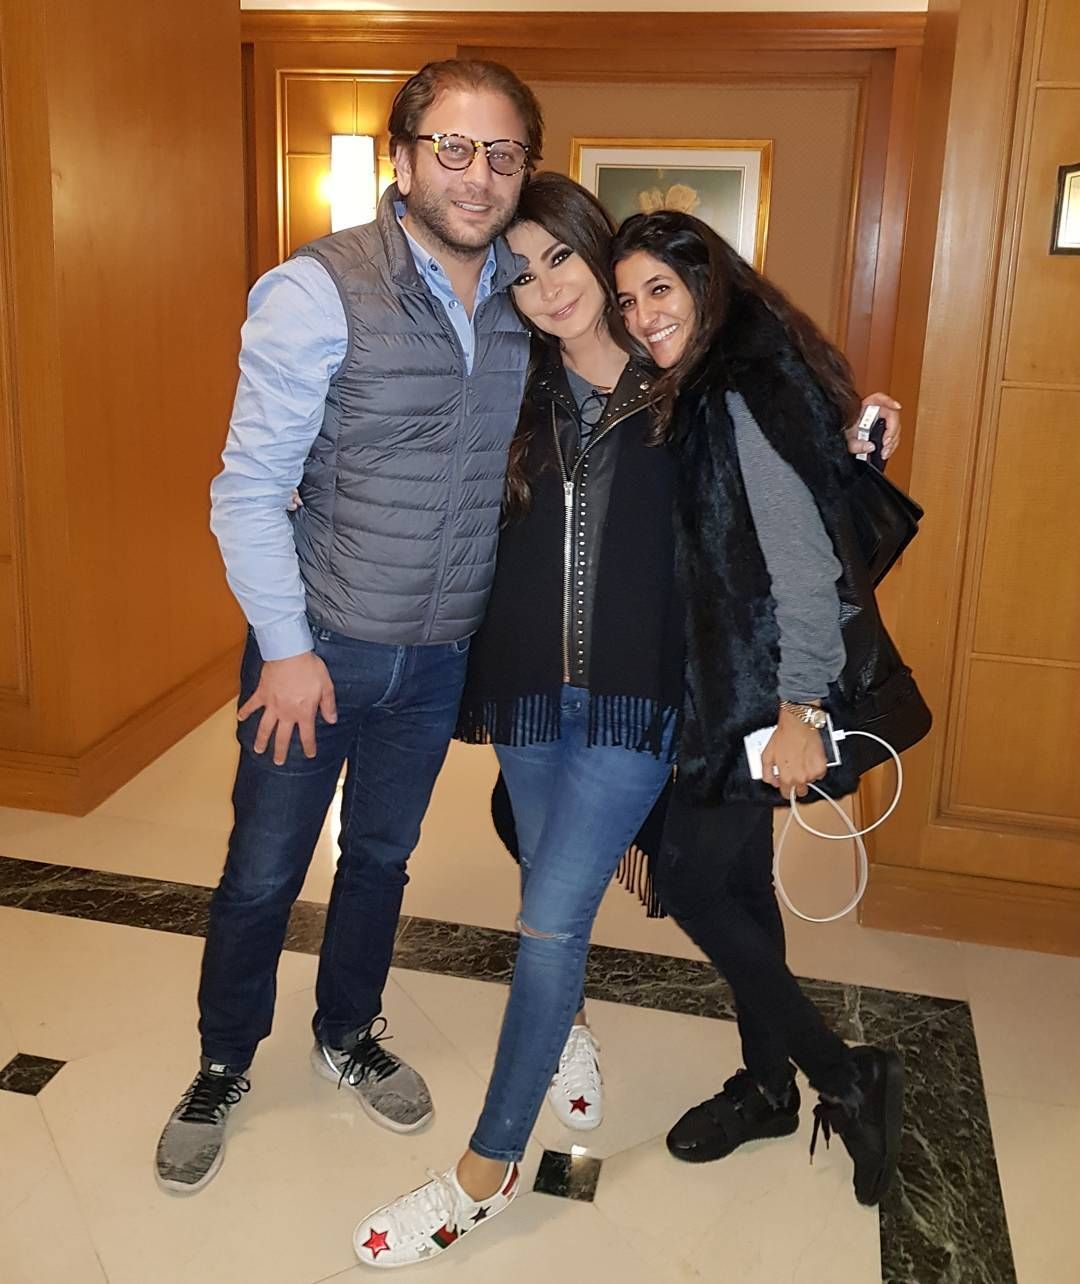 34 2k Likes 230 Comments Elissa Elissazkh On Instagram Night Out And About Cairo Egypt Angelaelsisi Ranyandco Bomber Jacket Winter Jackets Jackets